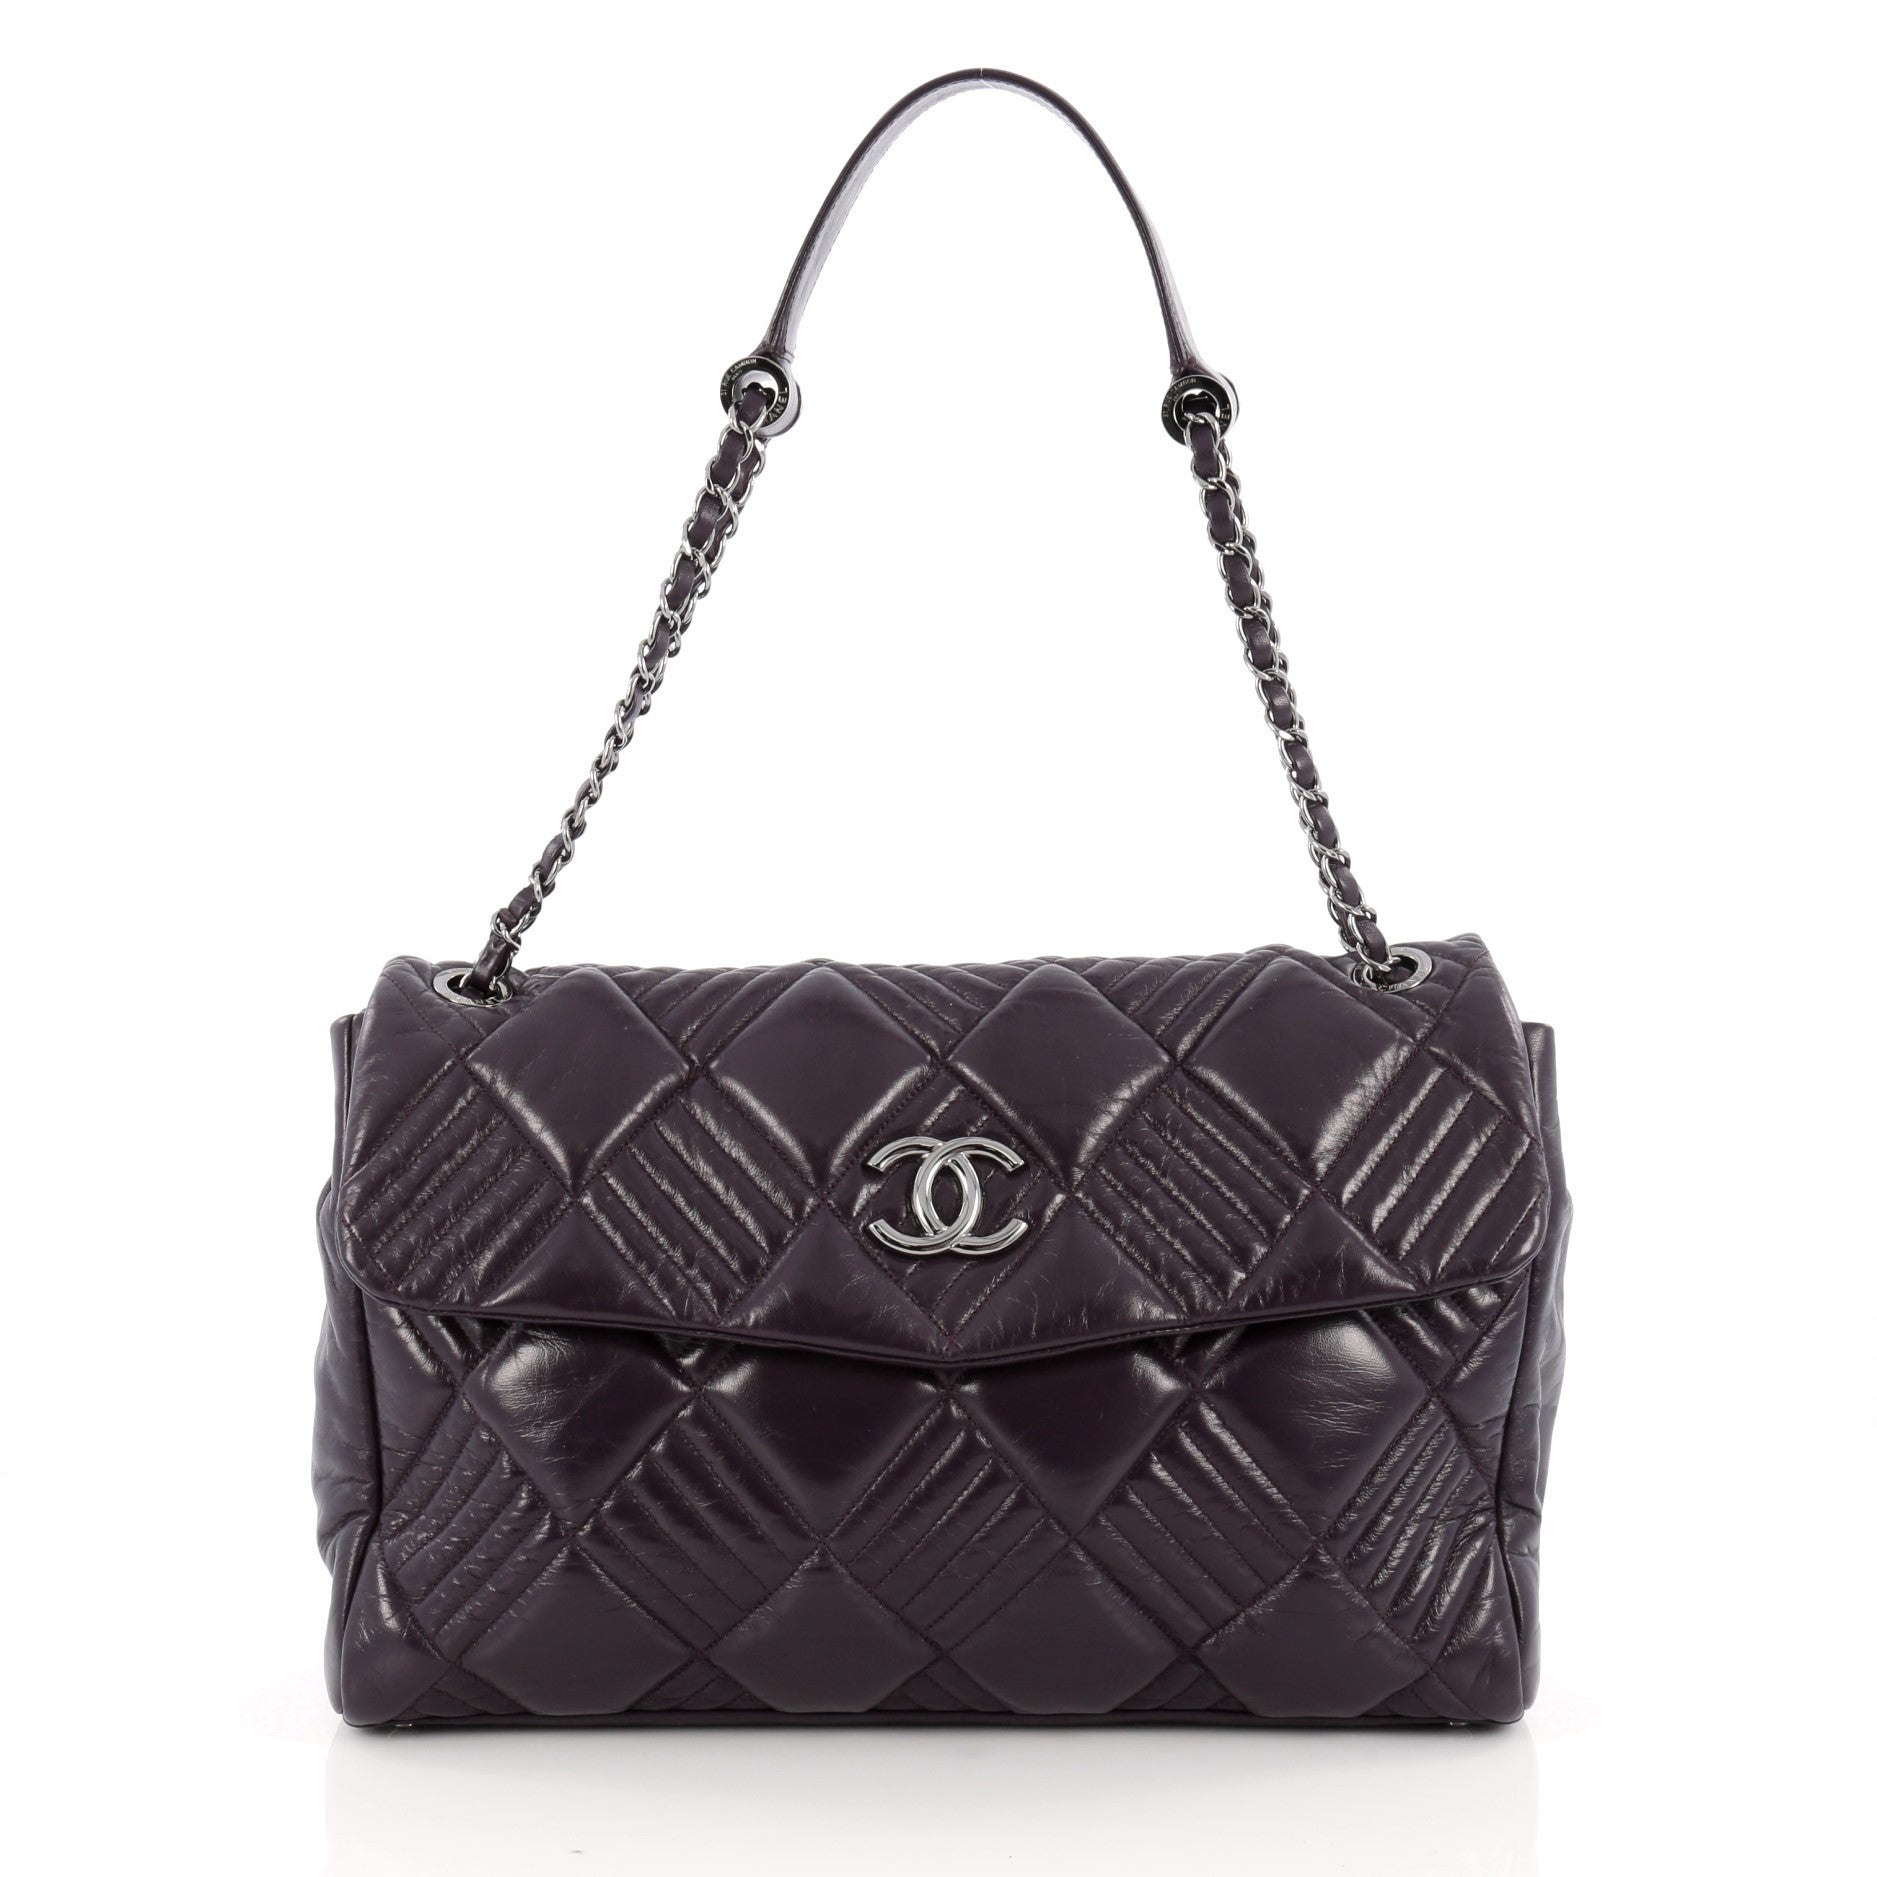 b8ed3c84bb62 17036-02_Chanel_In_and_Out_Flap_Bag_Quilted_Lambsk_2D_0003.jpg?v=1524265797